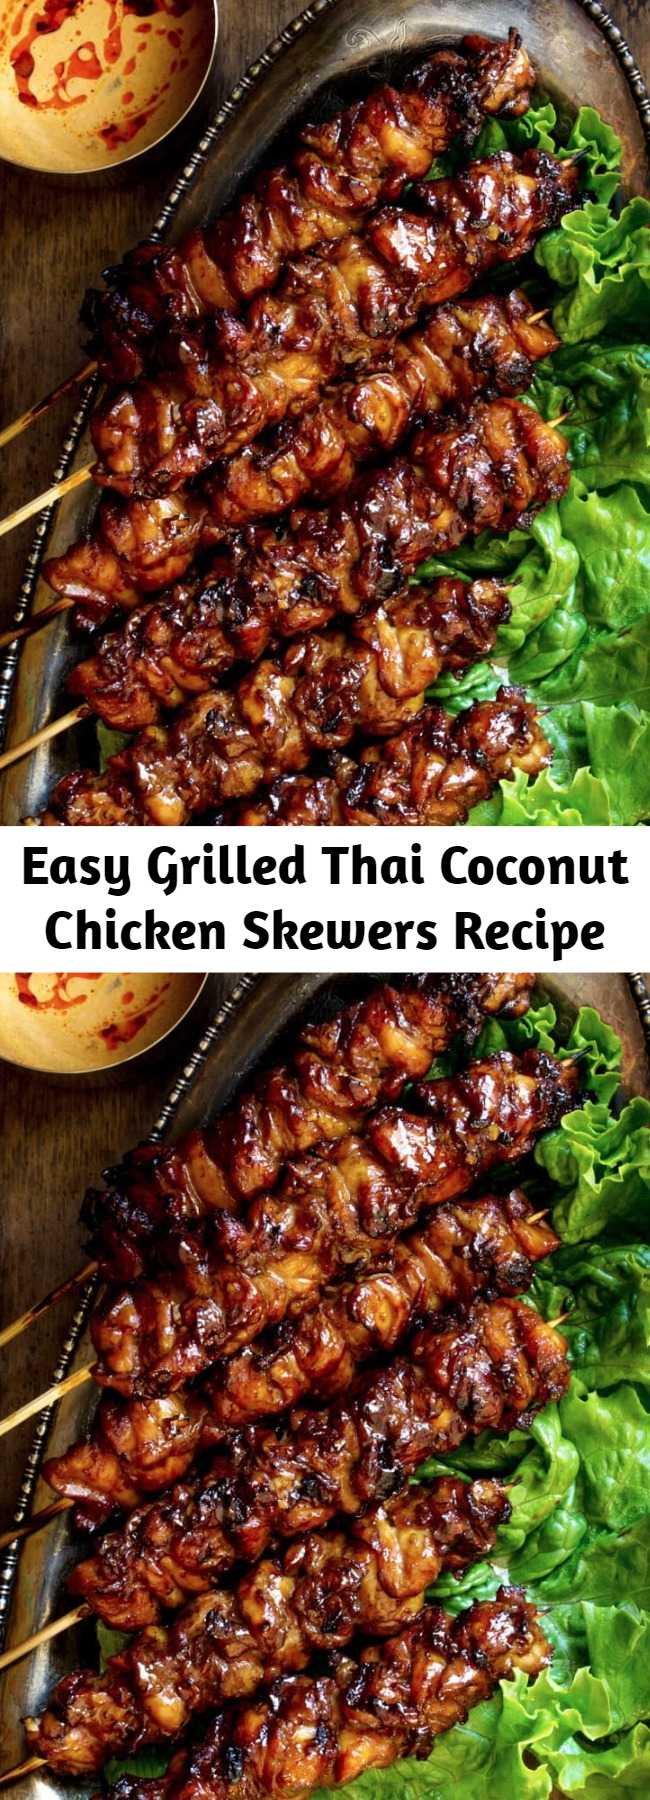 Easy Grilled Thai Coconut Chicken Skewers Recipe - Smoky grilled chicken skewers recipe, marinated in ginger, garlic, coconut cream and soy sauce. Then finished with a sweet coconut cream glaze and served with a simple peanut sauce. Big on flavor, super easy to throw together!